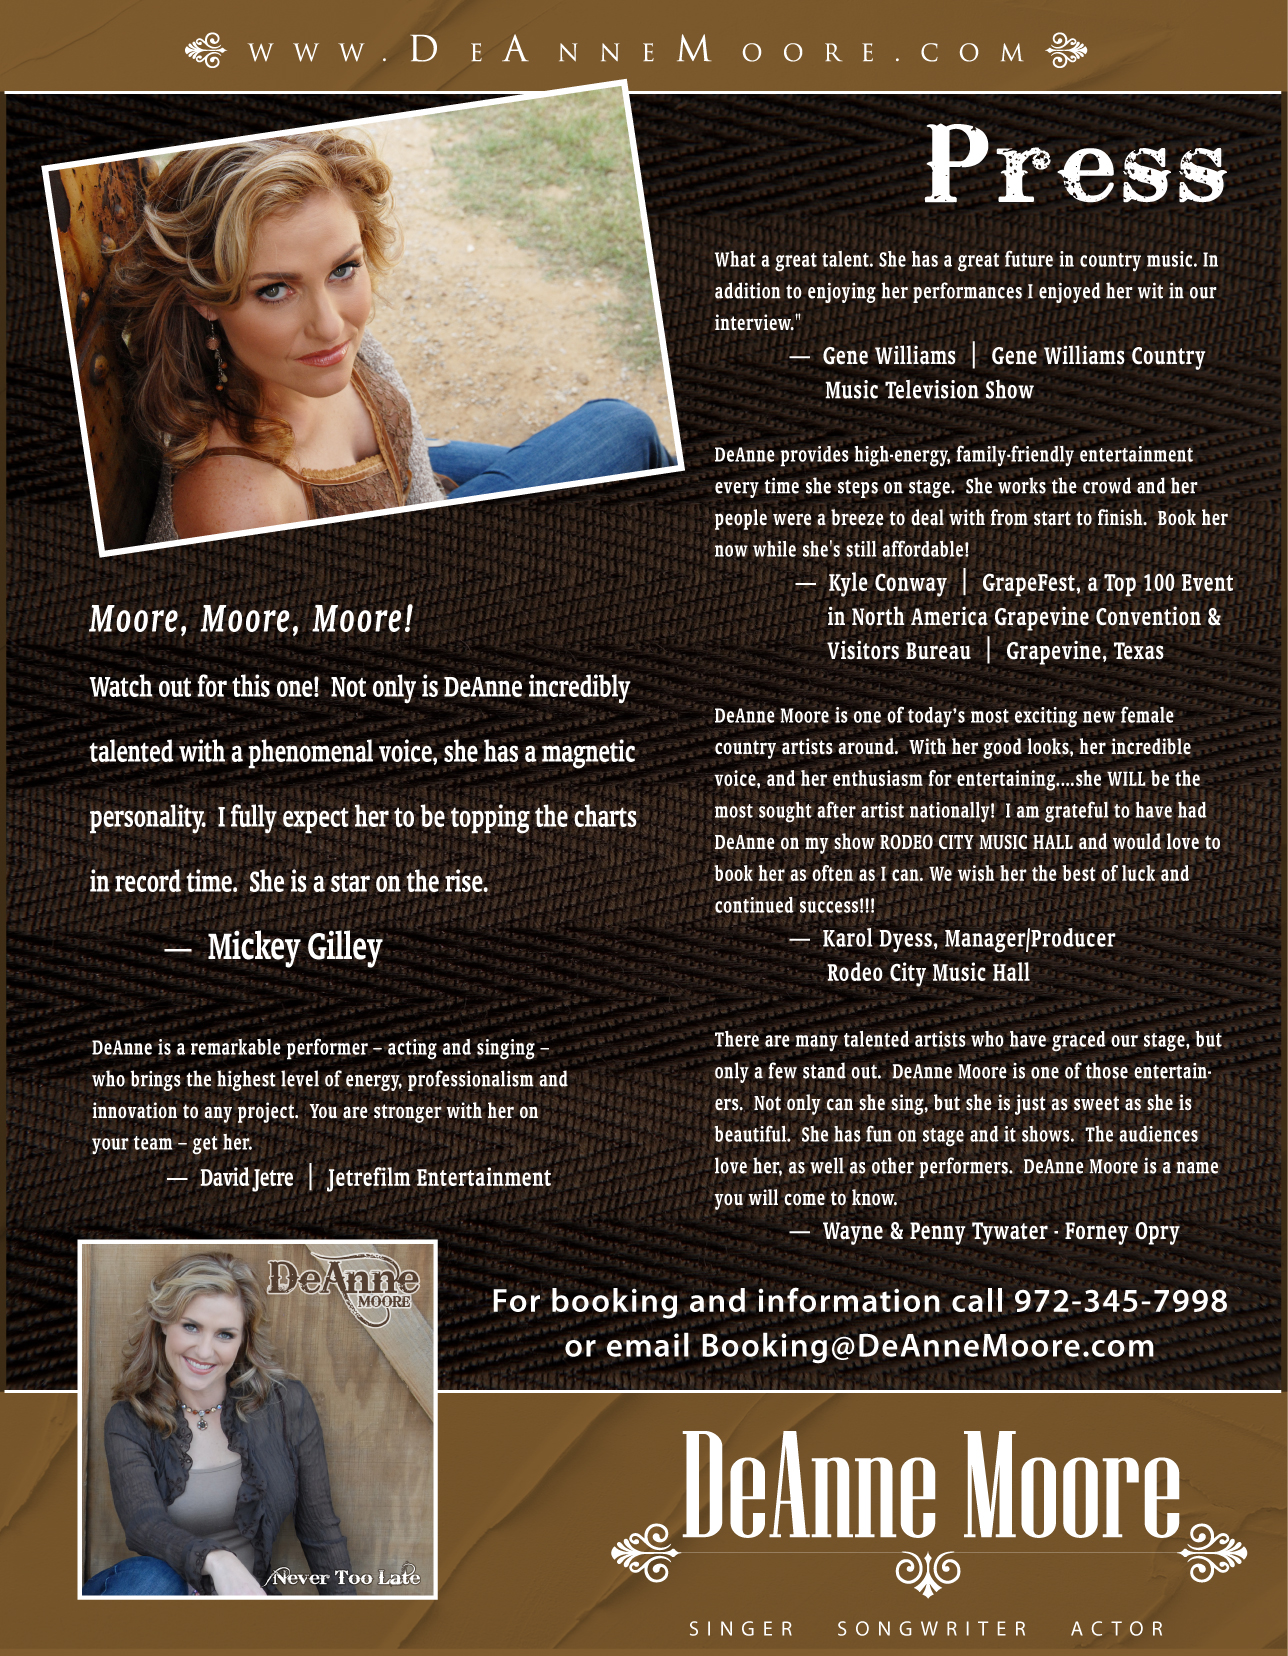 DeAnne Moore Press Kit